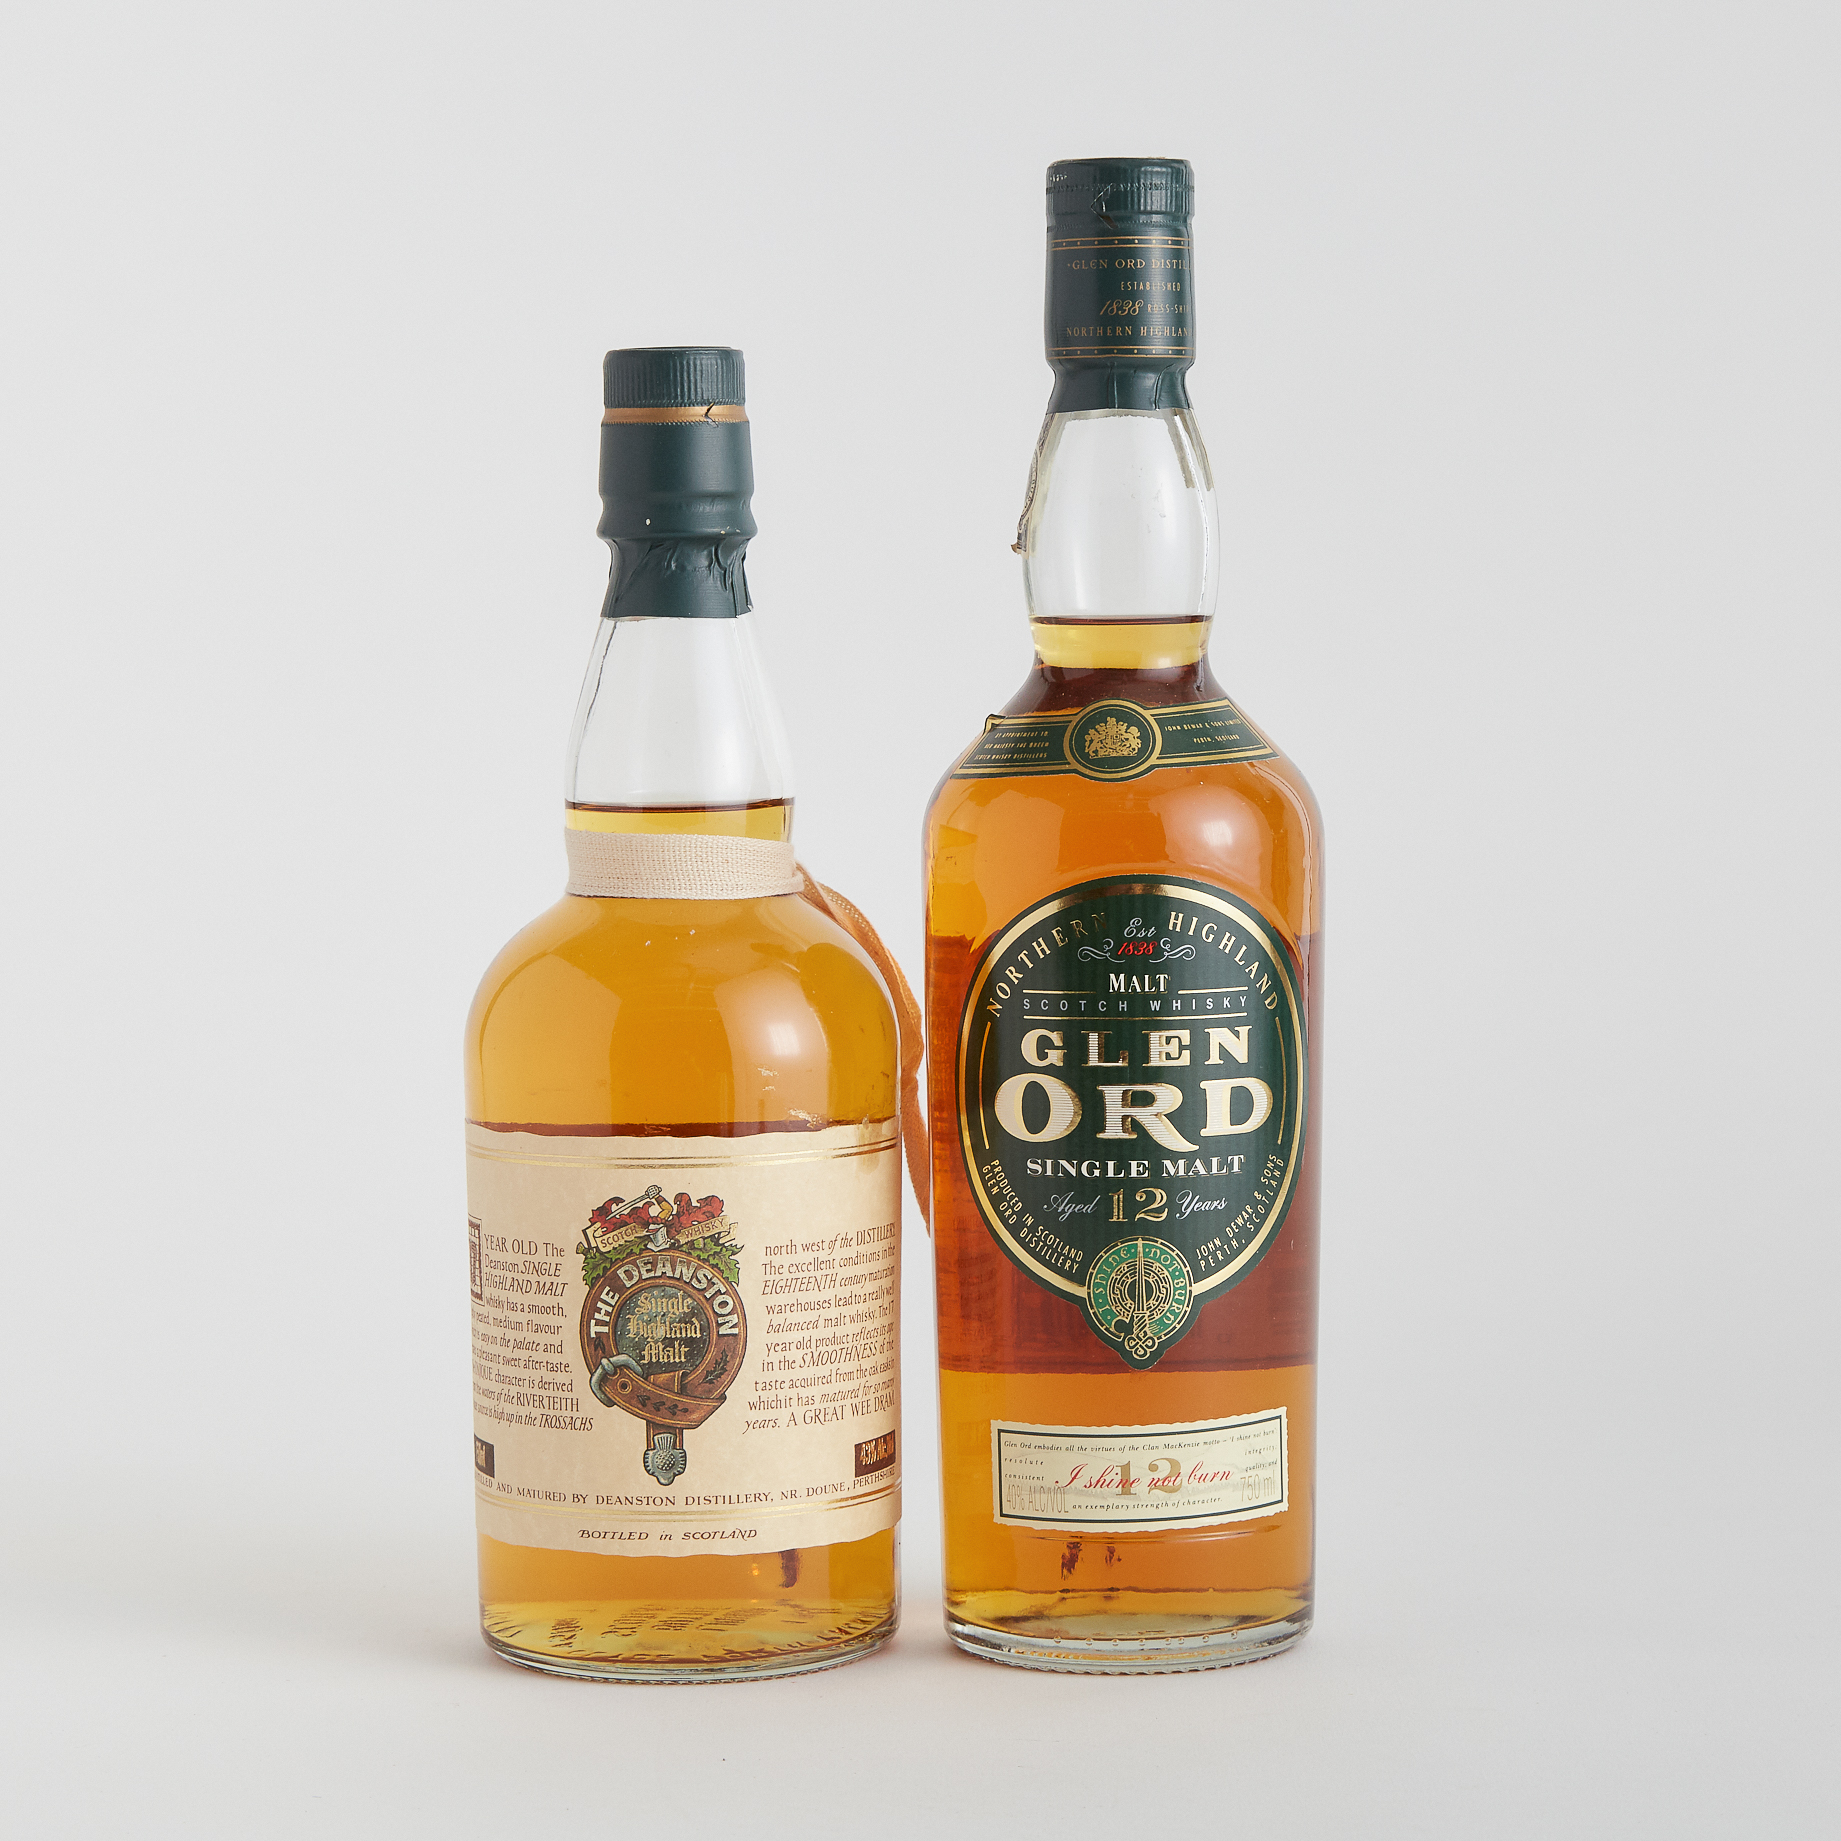 GLEN ORD SINGLE MALT SCOTCH WHISKY 12 YEARS (ONE 750 ML) THE DEANSTON SINGLE HIGHLAND MALT SCOTCH WHISKY 17 YEARS (ONE 750 ML)